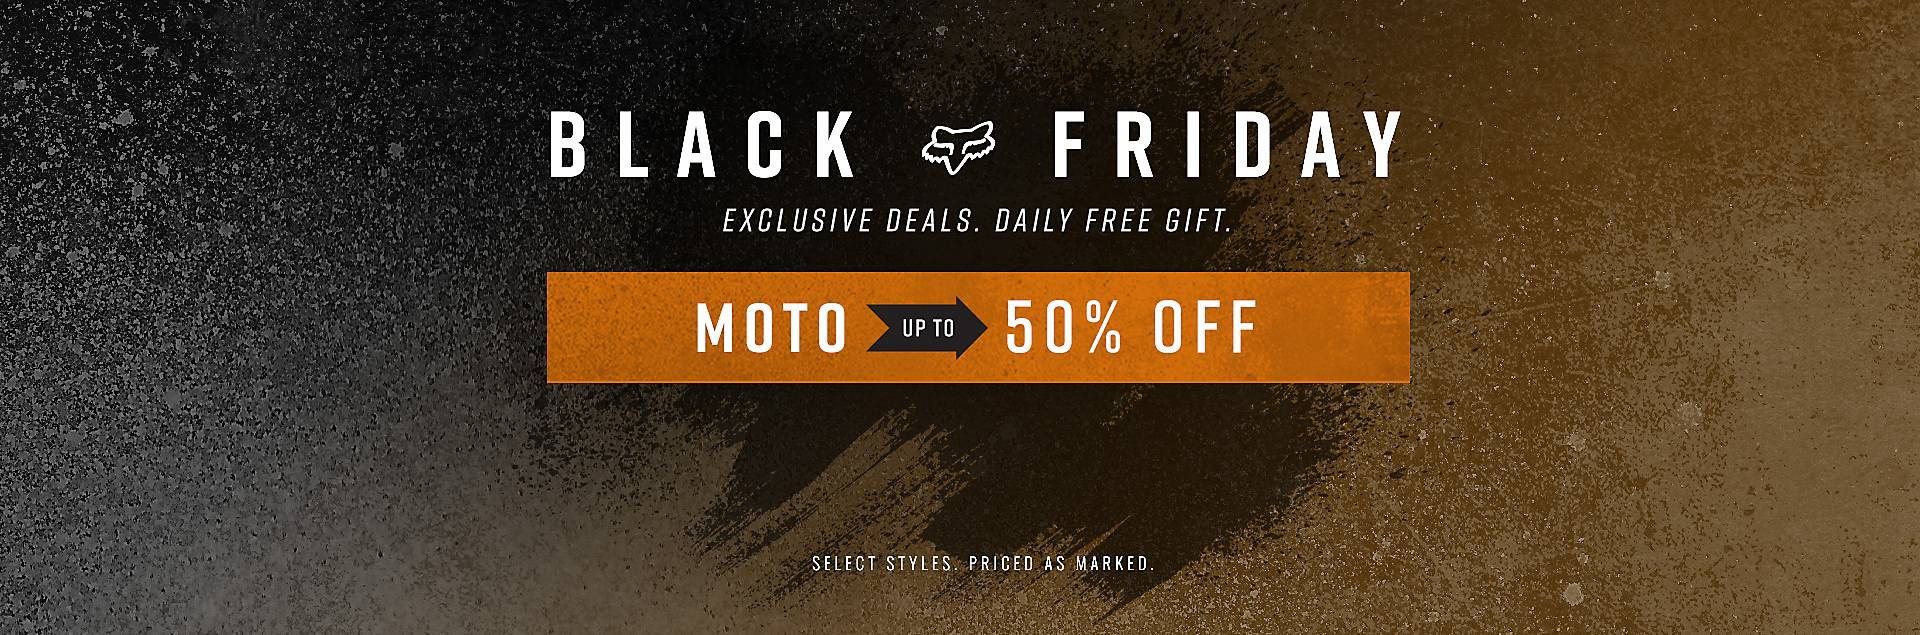 Up to 50% Off Moto